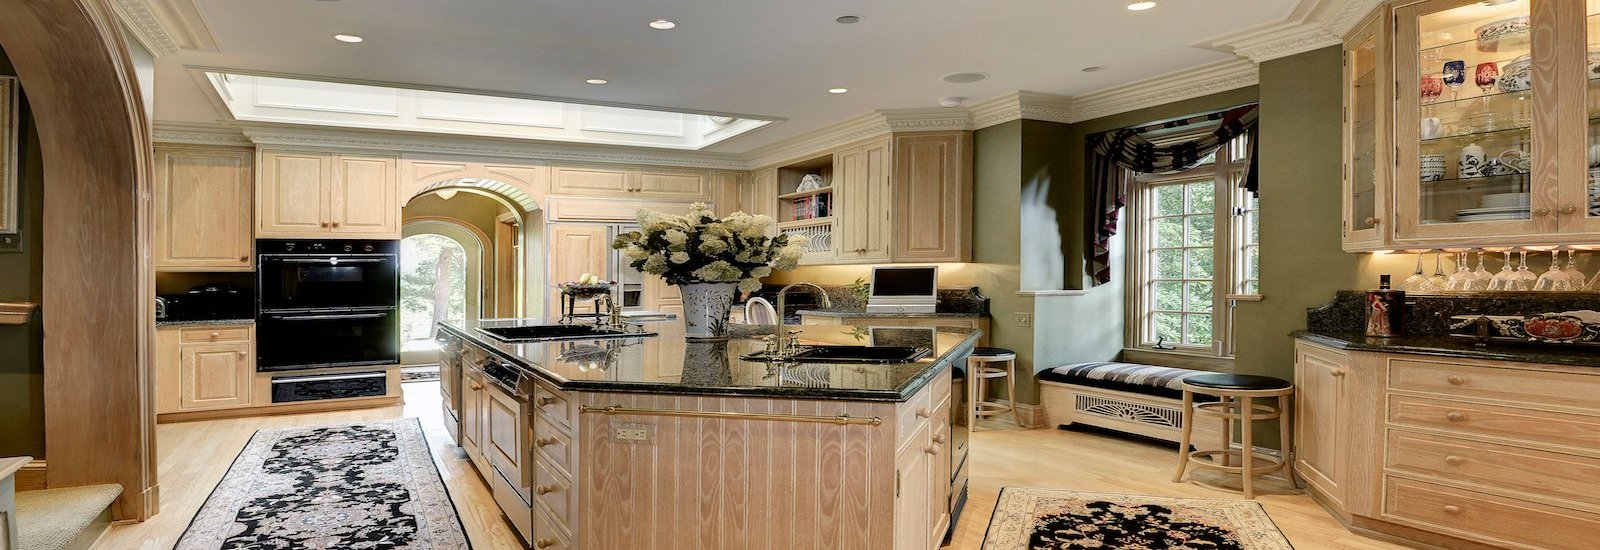 Form Follows Food Luxury Kitchens From Around The World - Luxurious-kitchen-design-property